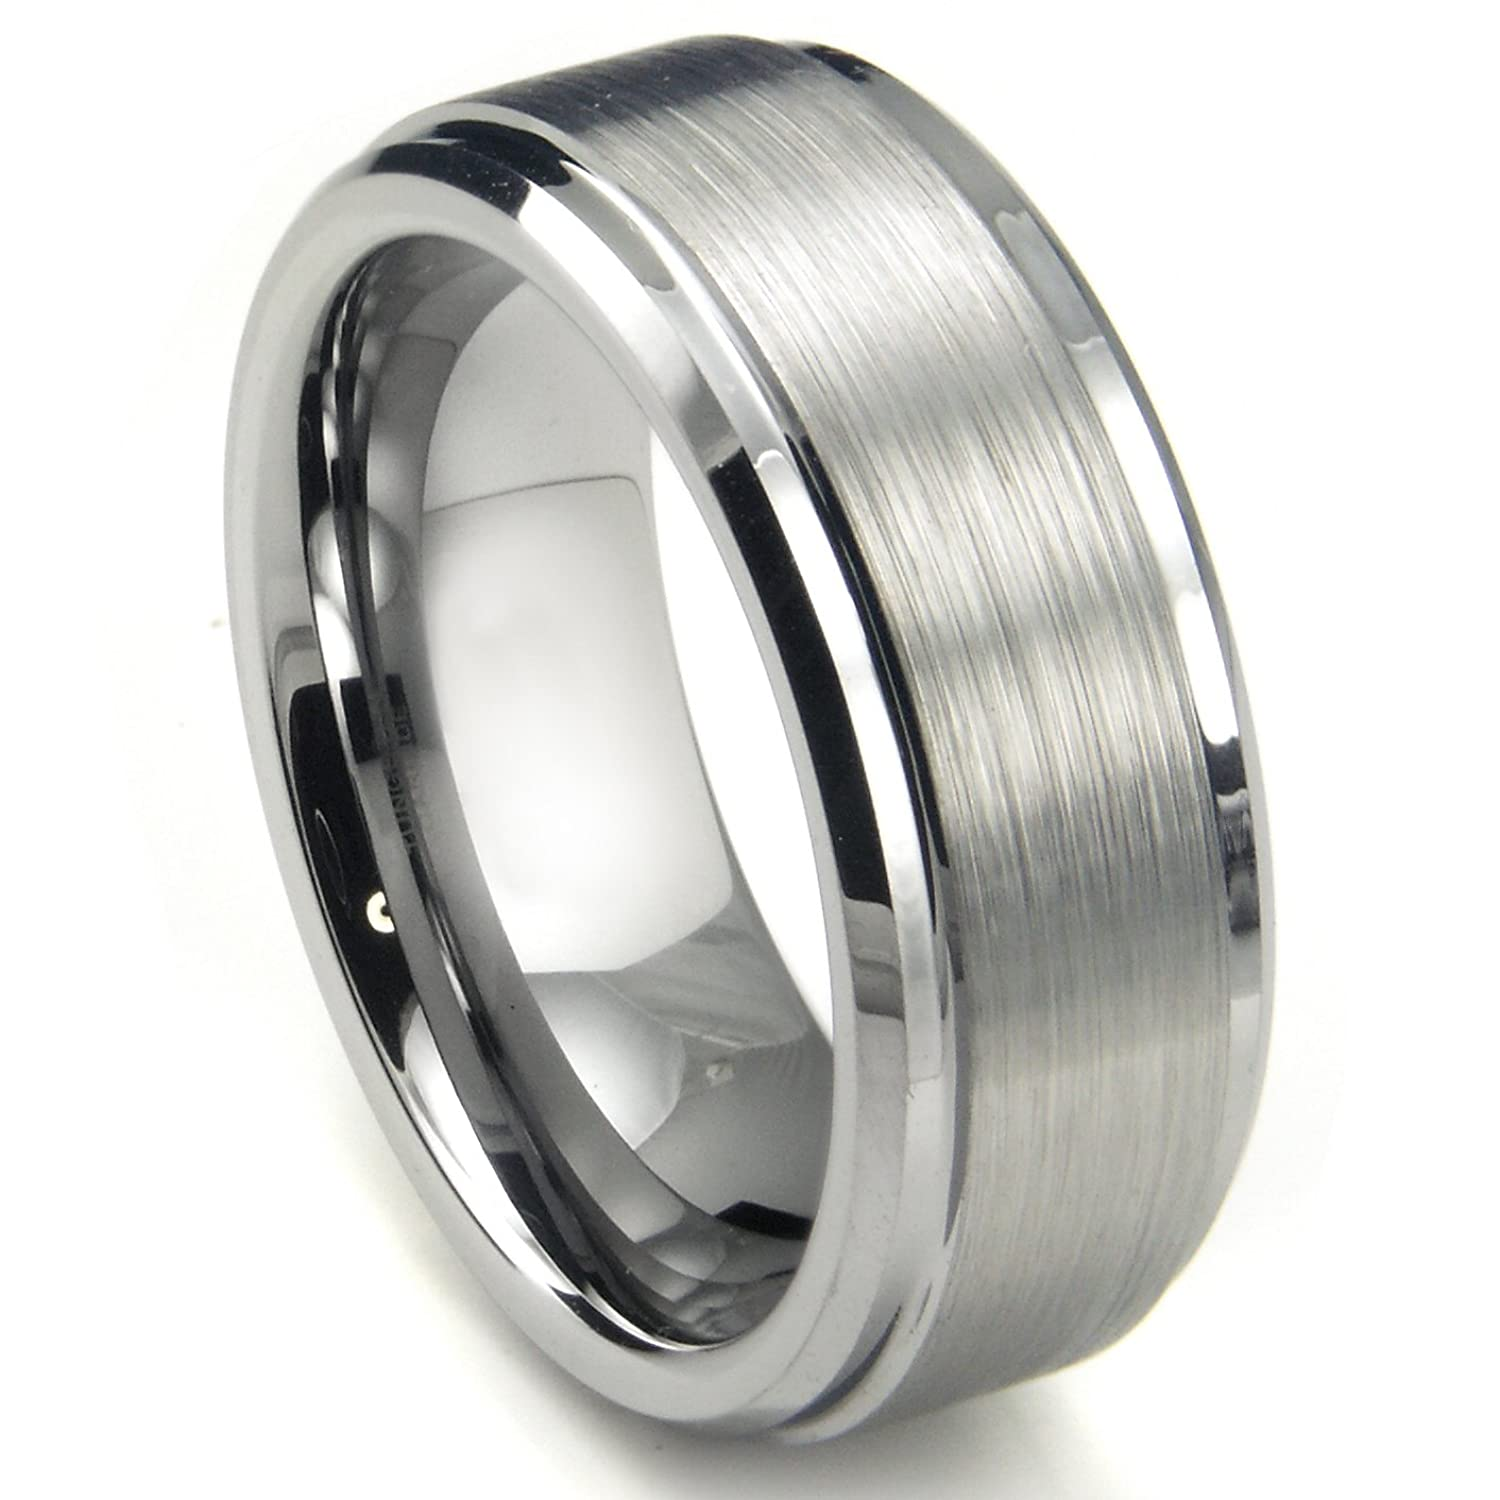 8MM High Polish / Matte Finish Menu0027s Tungsten Ring Wedding Band | Amazon.com